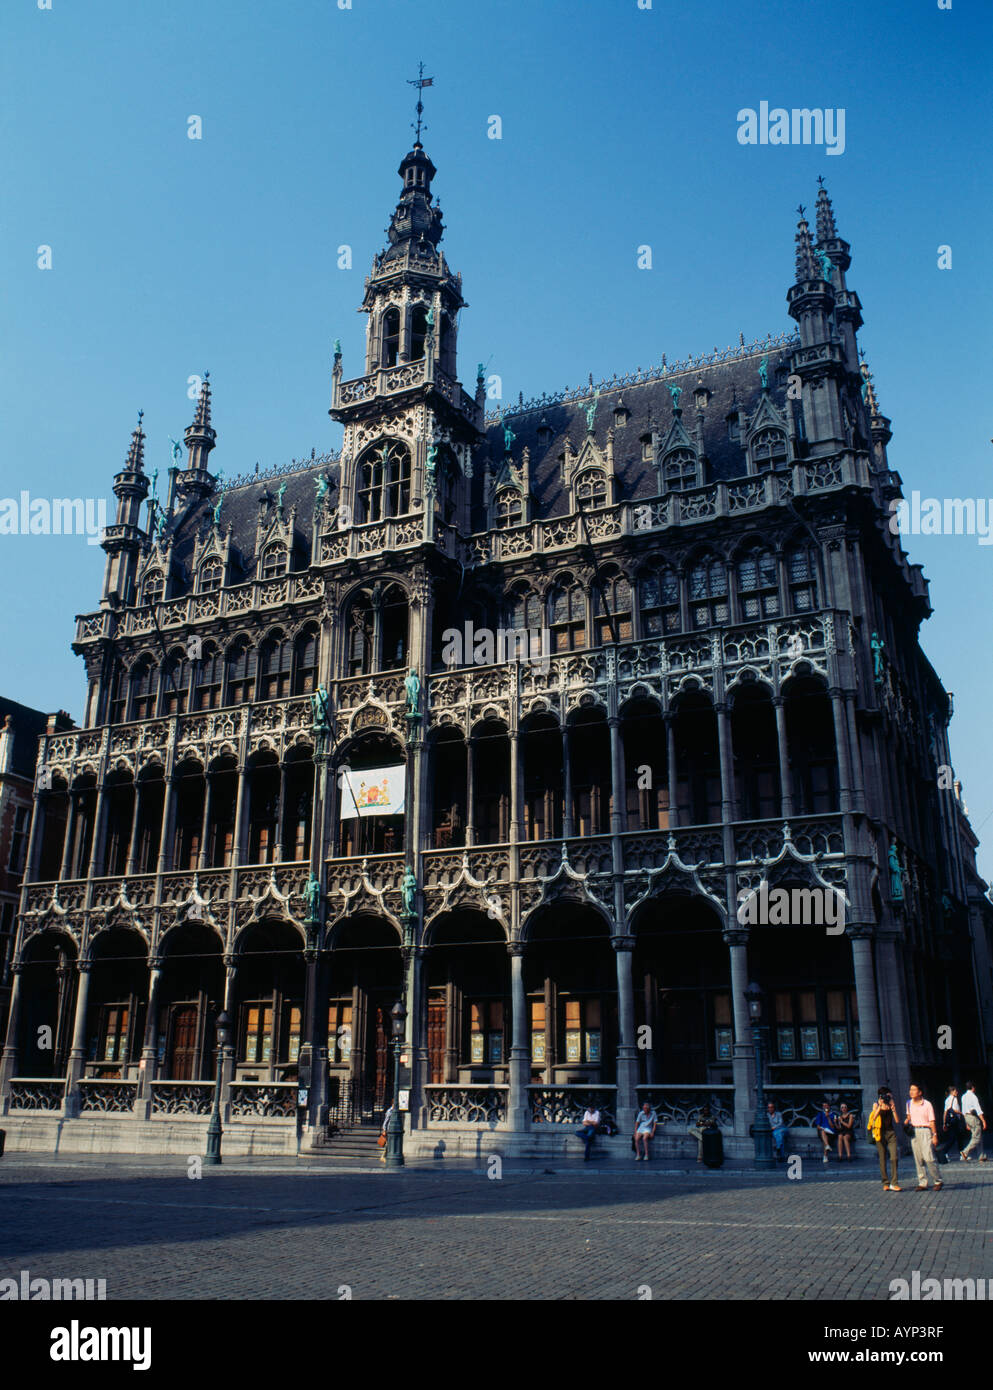 BELGIUM Brabant Brussels Grand Place square Maison du Roi Household of the King now housing the City Museum - Stock Image